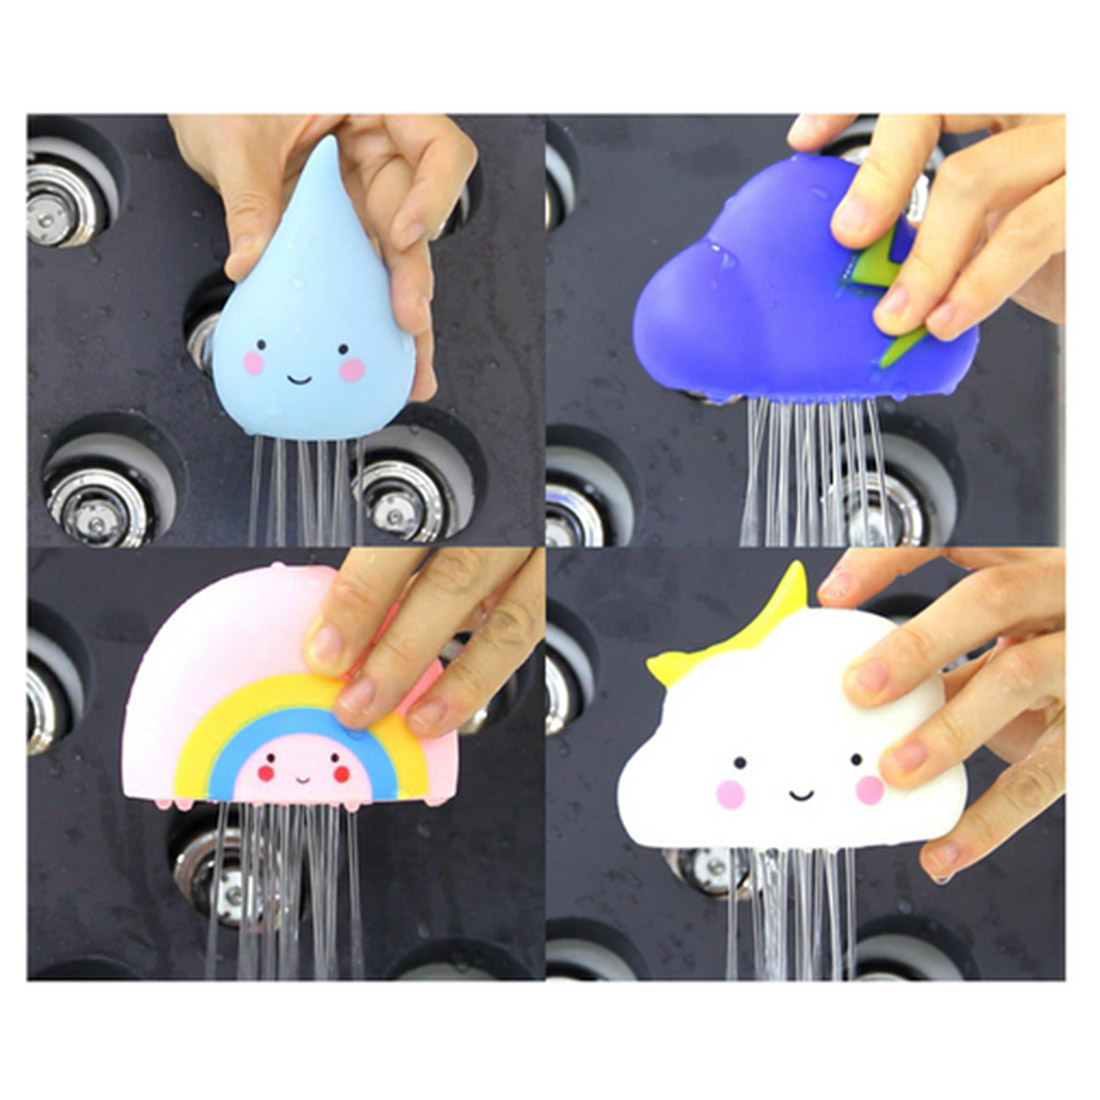 4 In 1 White Cloud Thundercloud Rainbow Raindrops Children Toys Bathroom Floating Water Bath Toy for Kids